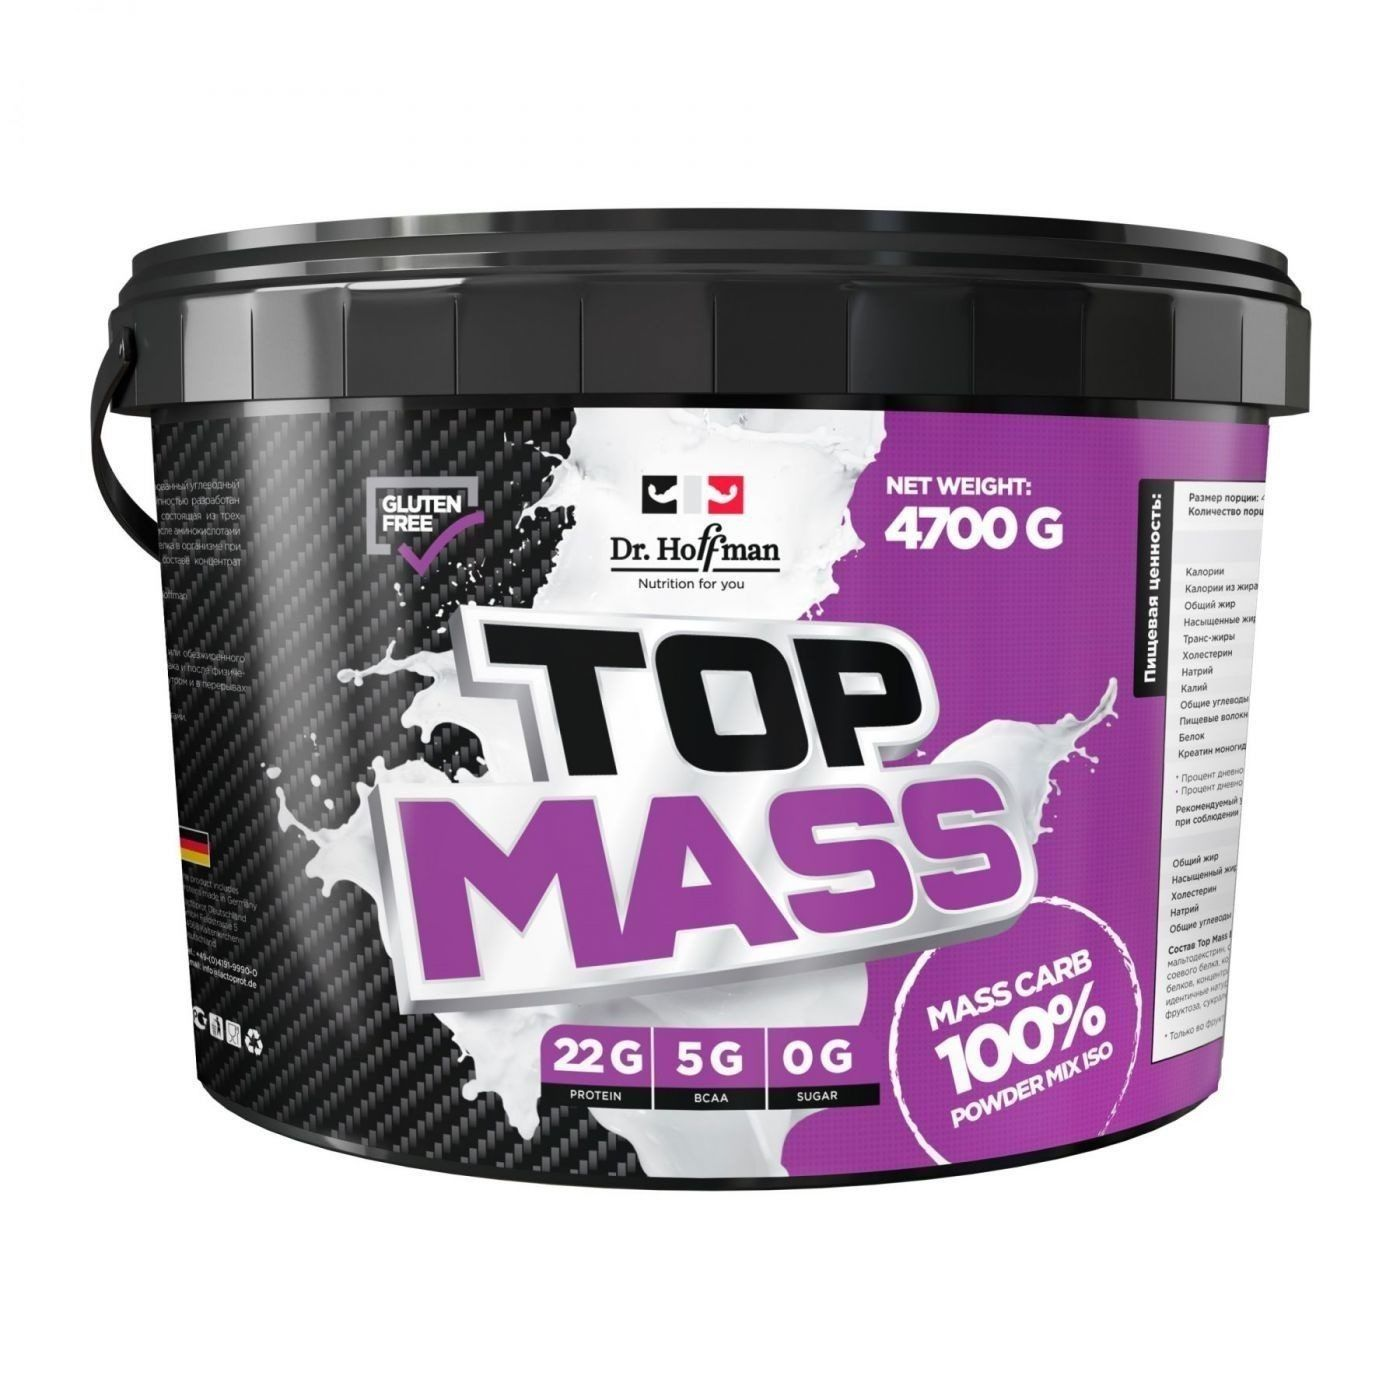 DR. HOFFMAN TOP MASS 4700G